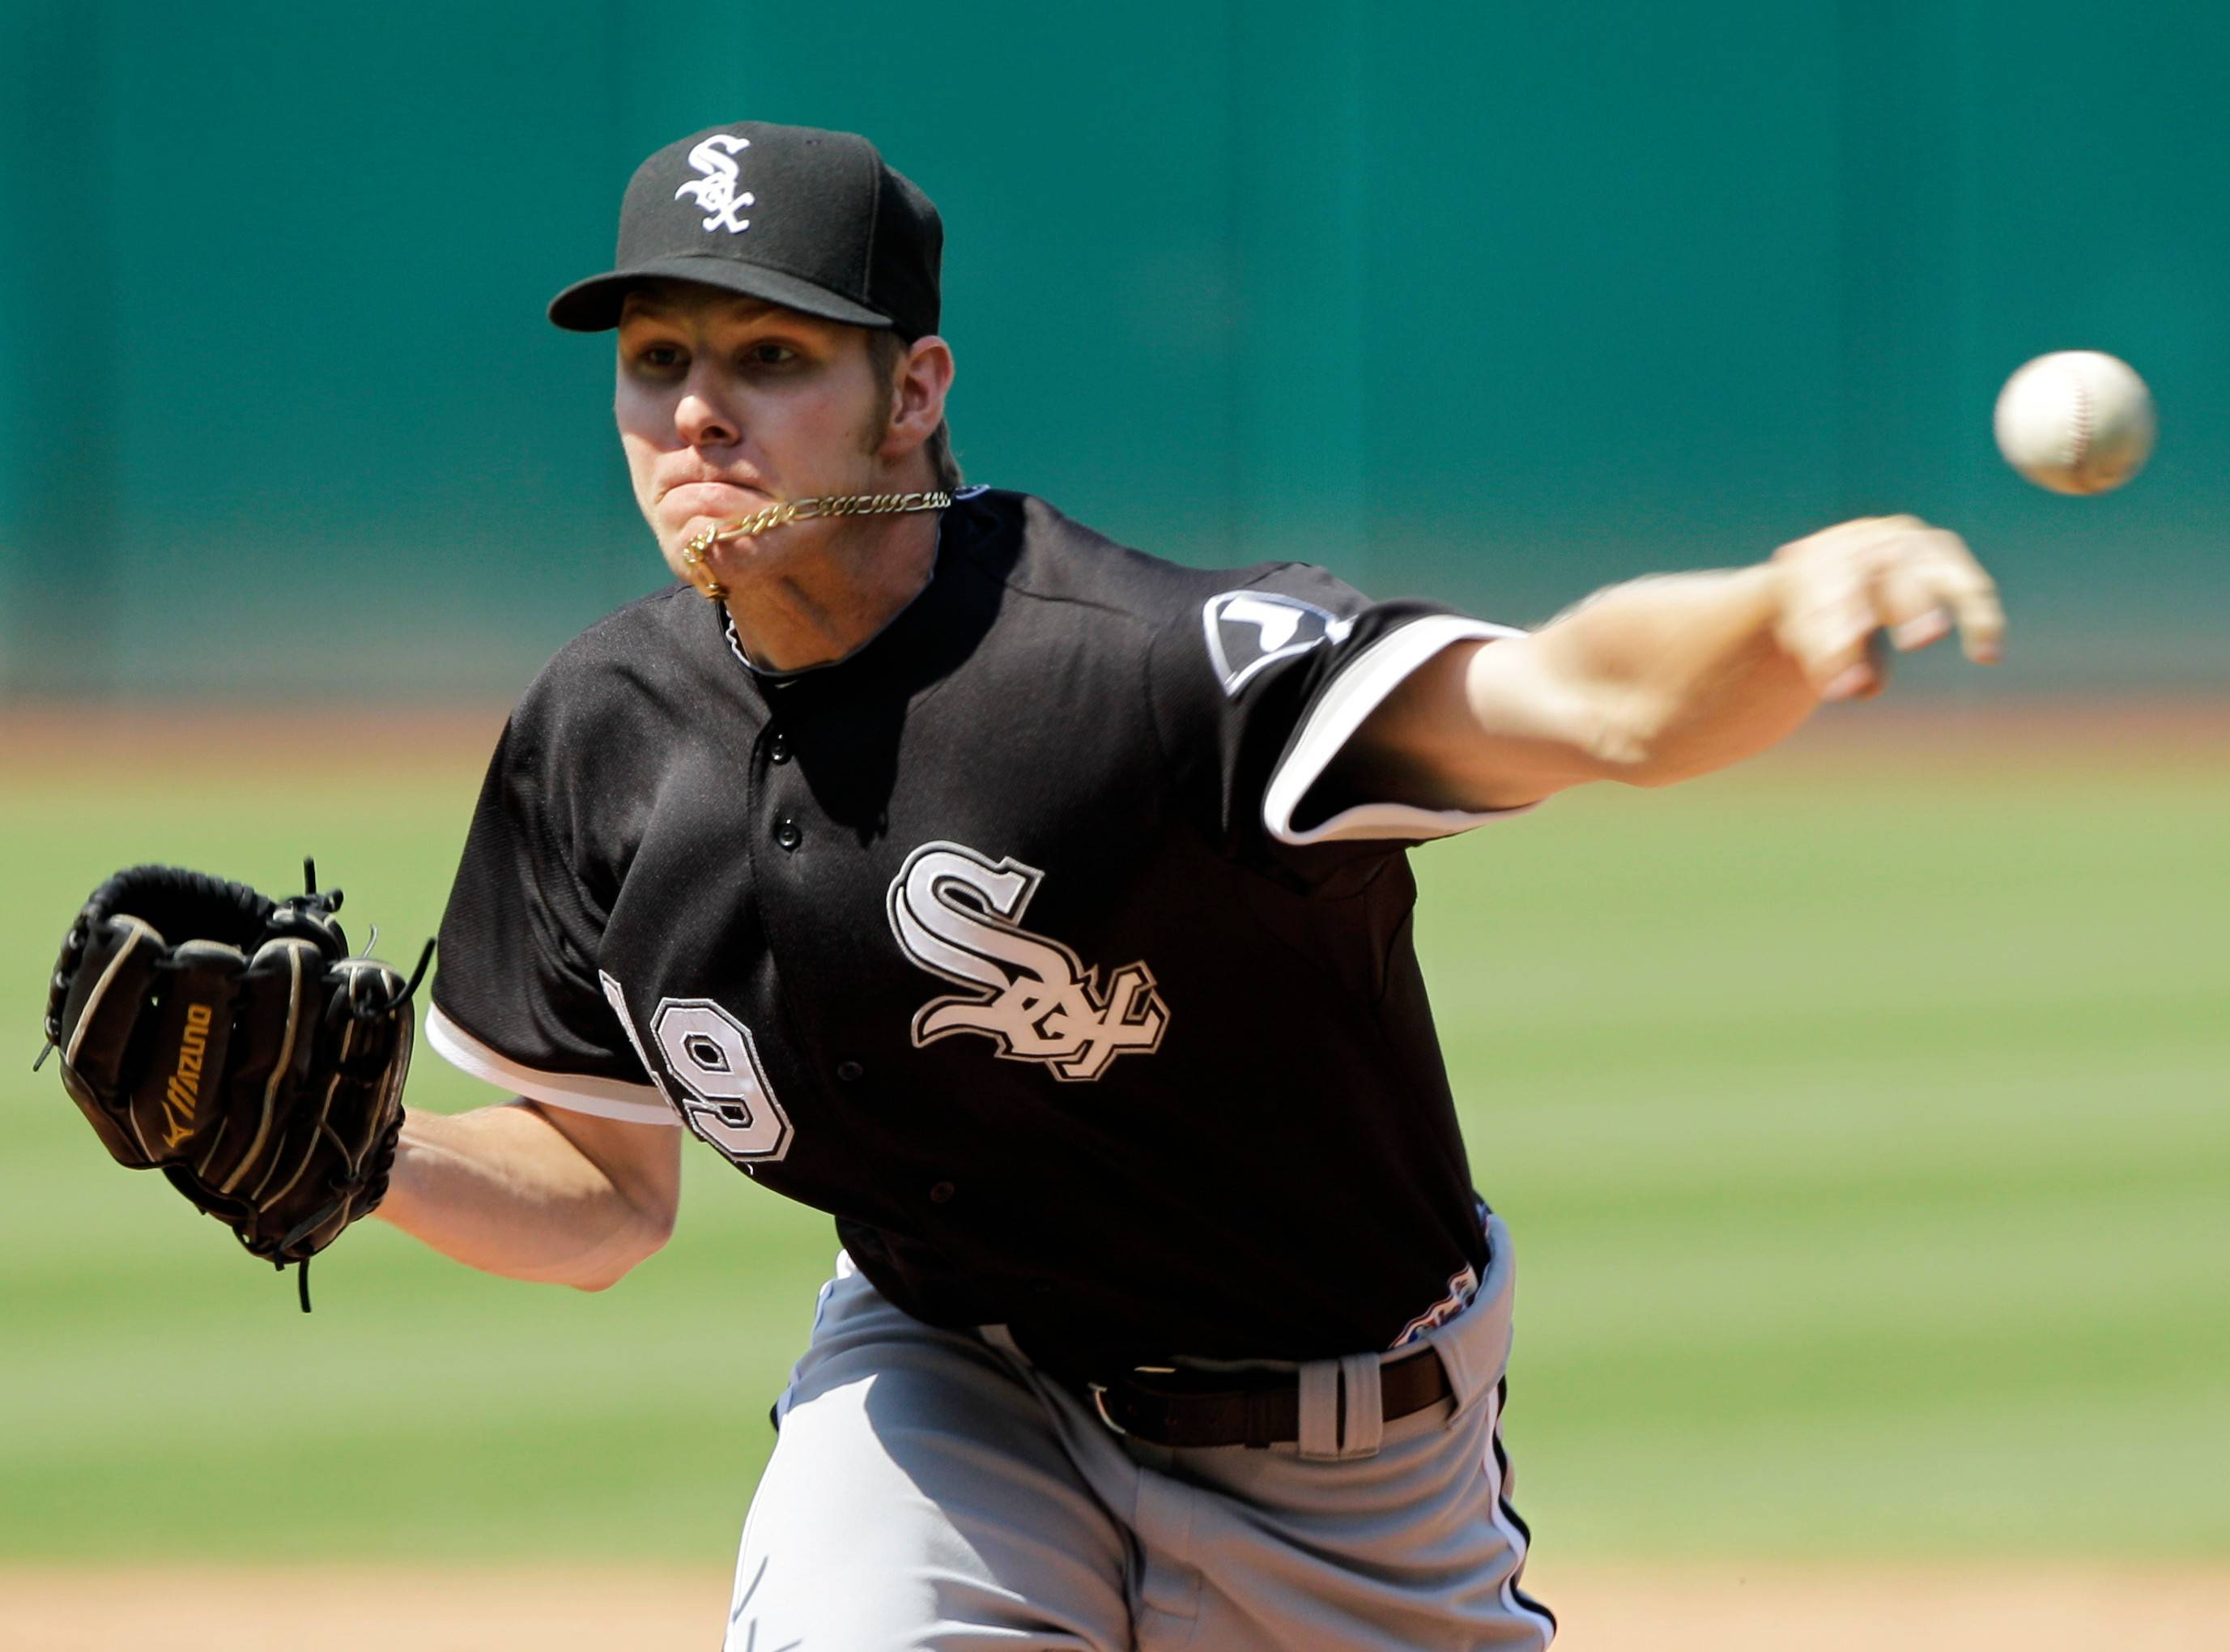 White Sox ace left-hander Chris Sale, who is on the disabled list with a flexor injury to his throwing arm, is due back soon. Chris Rongey recommends that you enjoy watching Sale pitch for as long as he can.